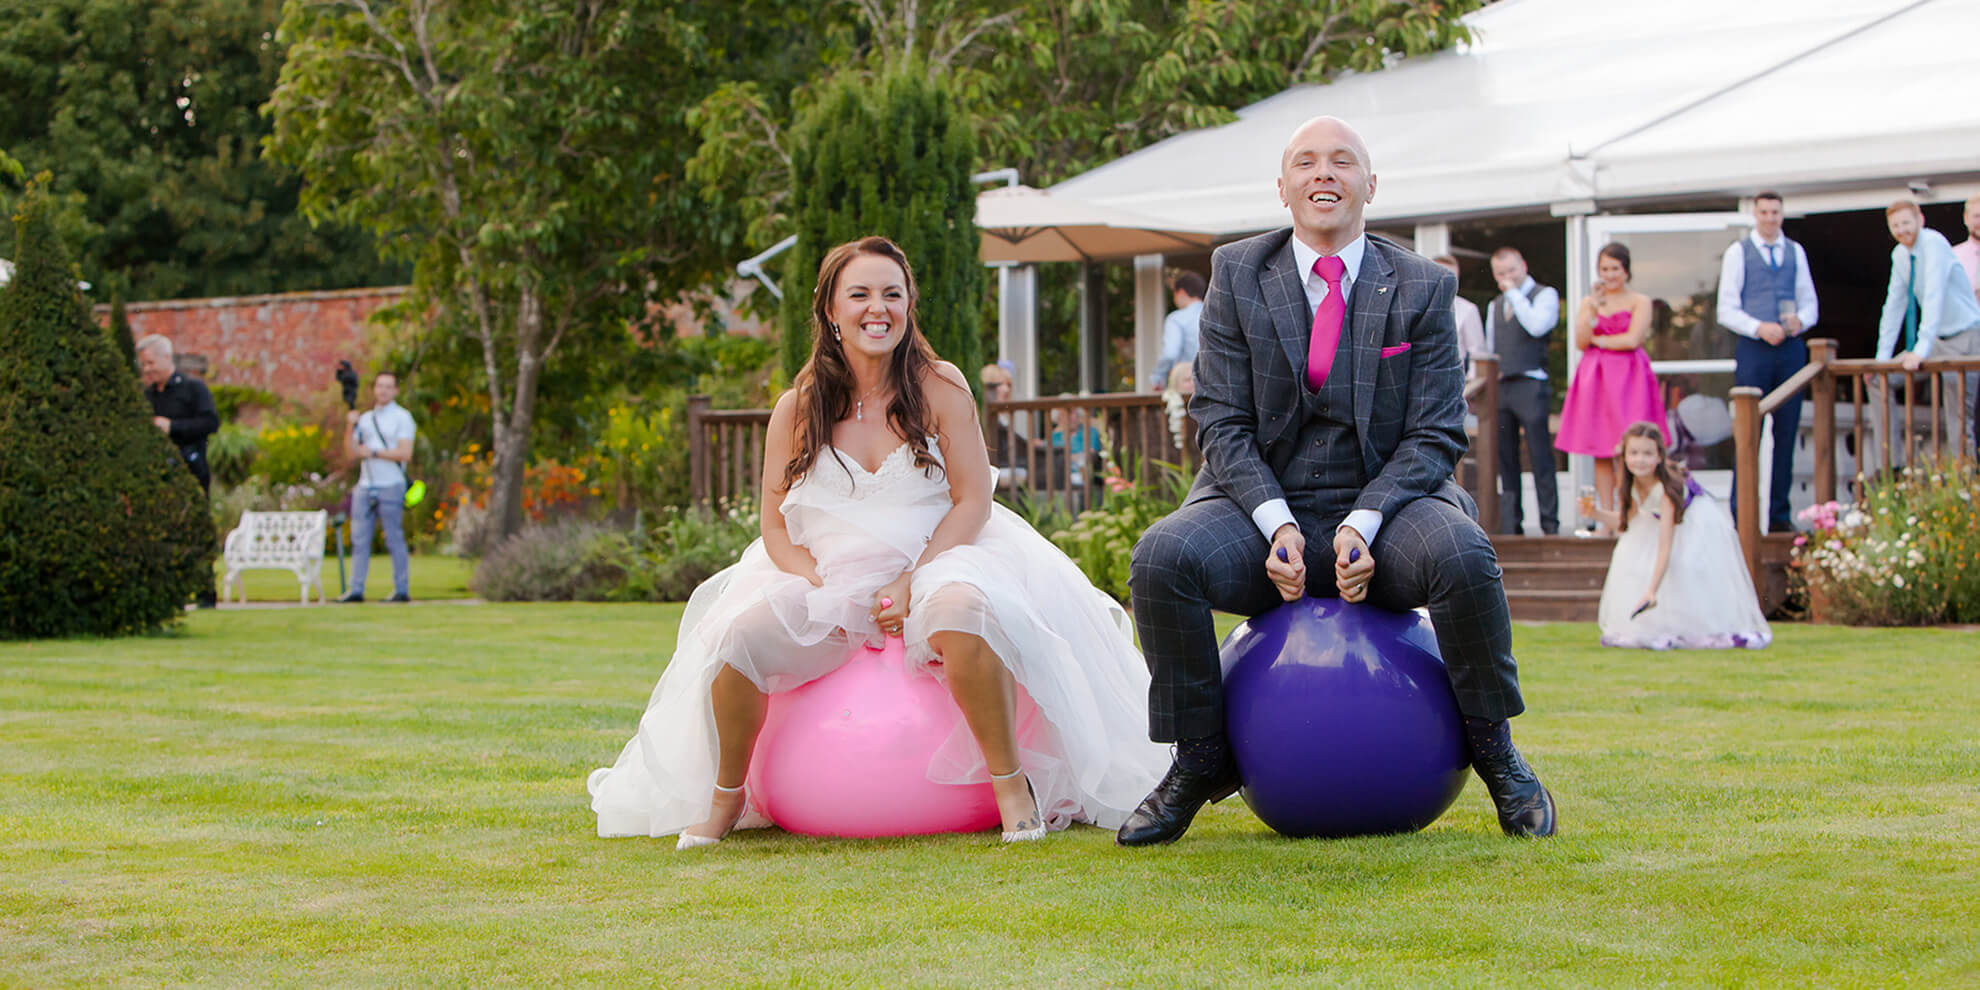 With fun being a priority on their wedding day the newlyweds enjoy bouncing on space hoppers